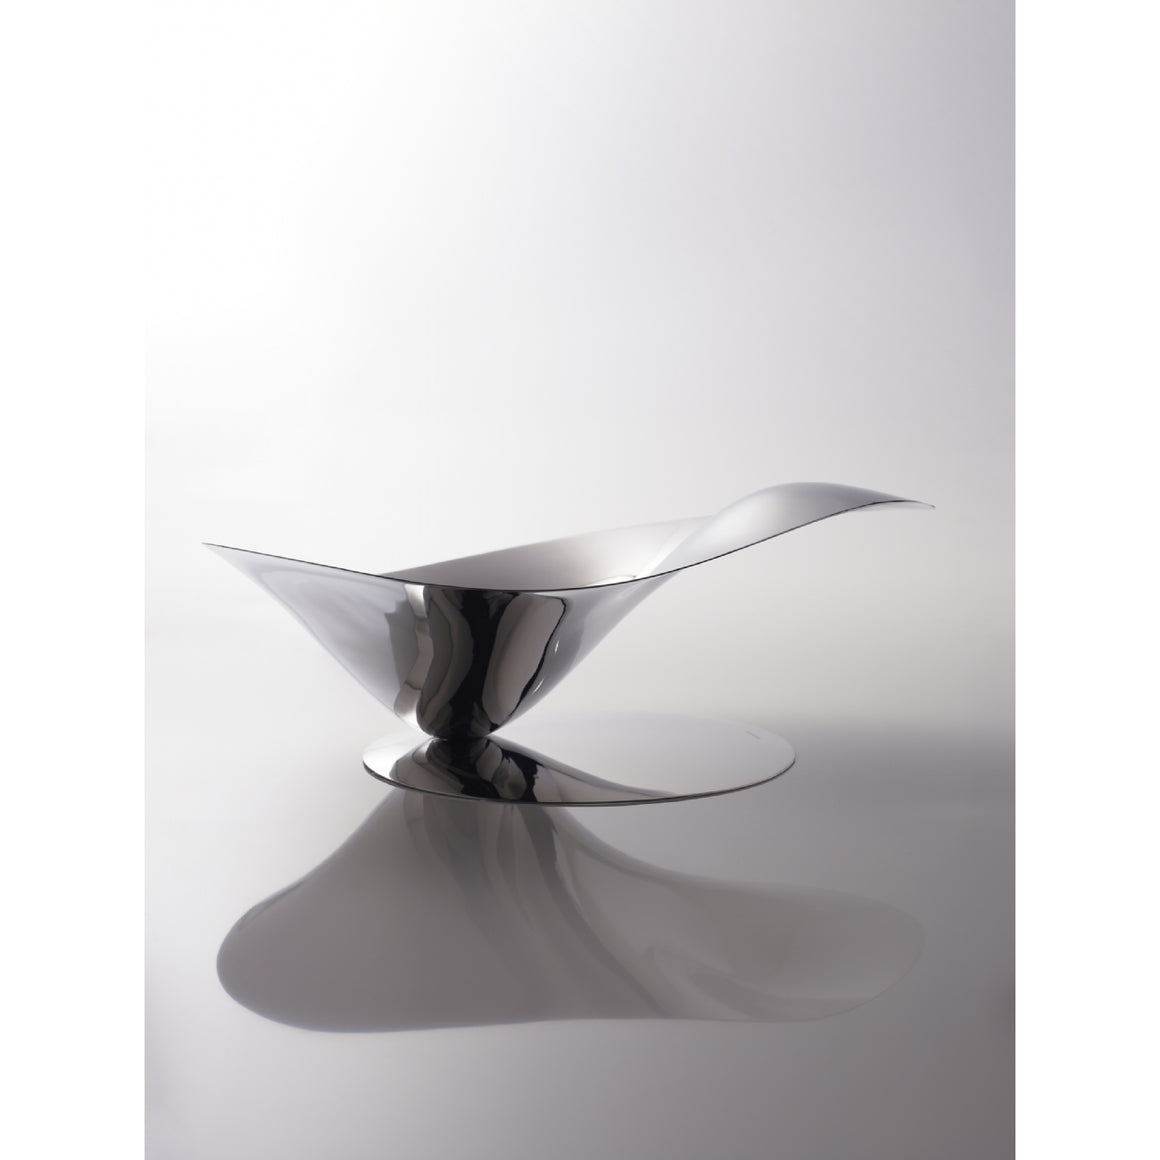 Bugatti - Petalo Fruit Bowl, Chrome